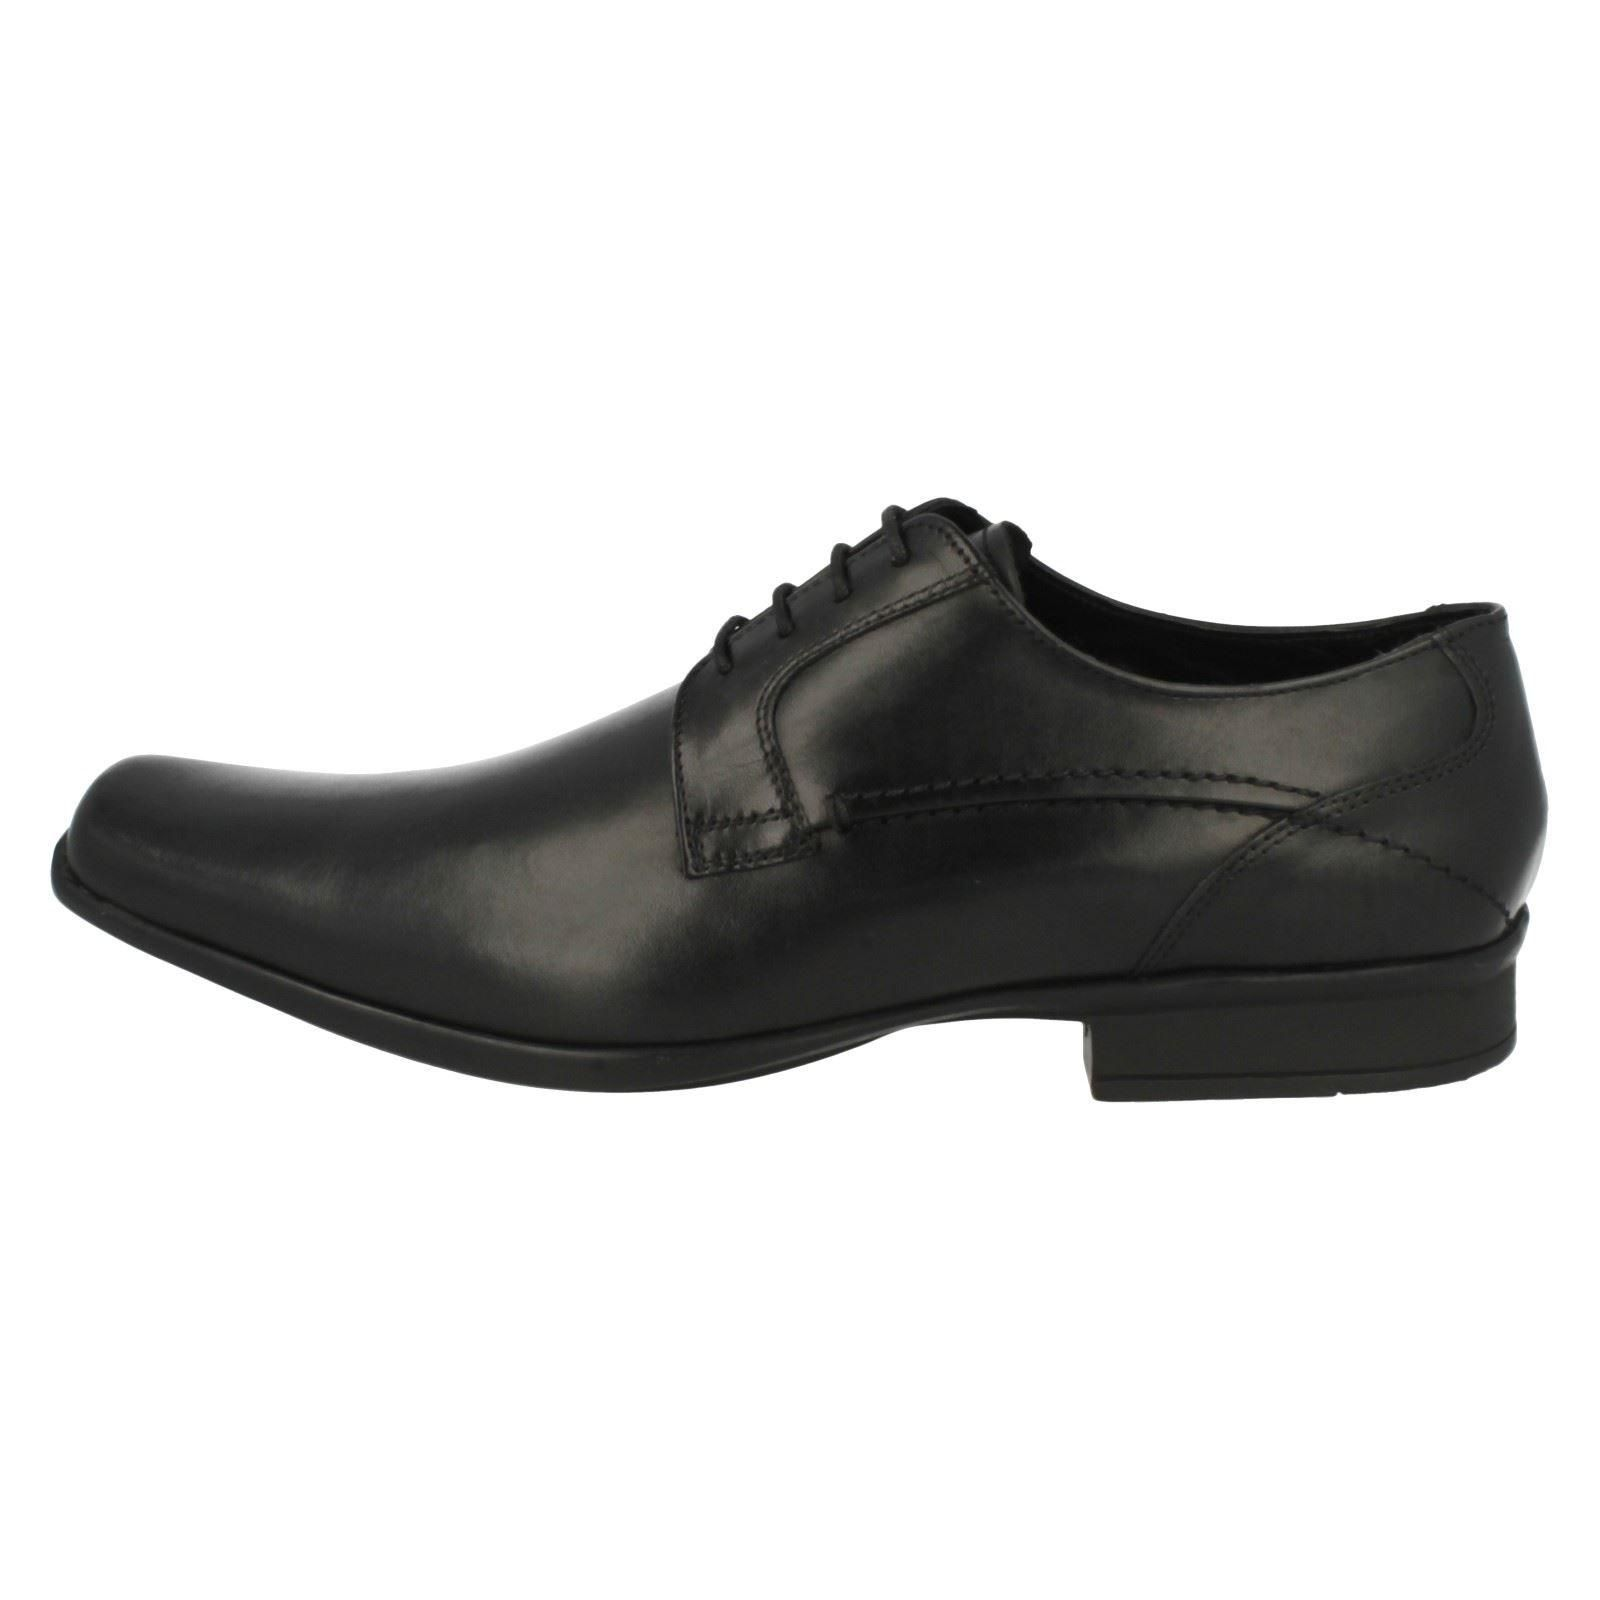 Mens-Clarks-Formal-Lace-Up-Shoes-Ascar-Walk thumbnail 3